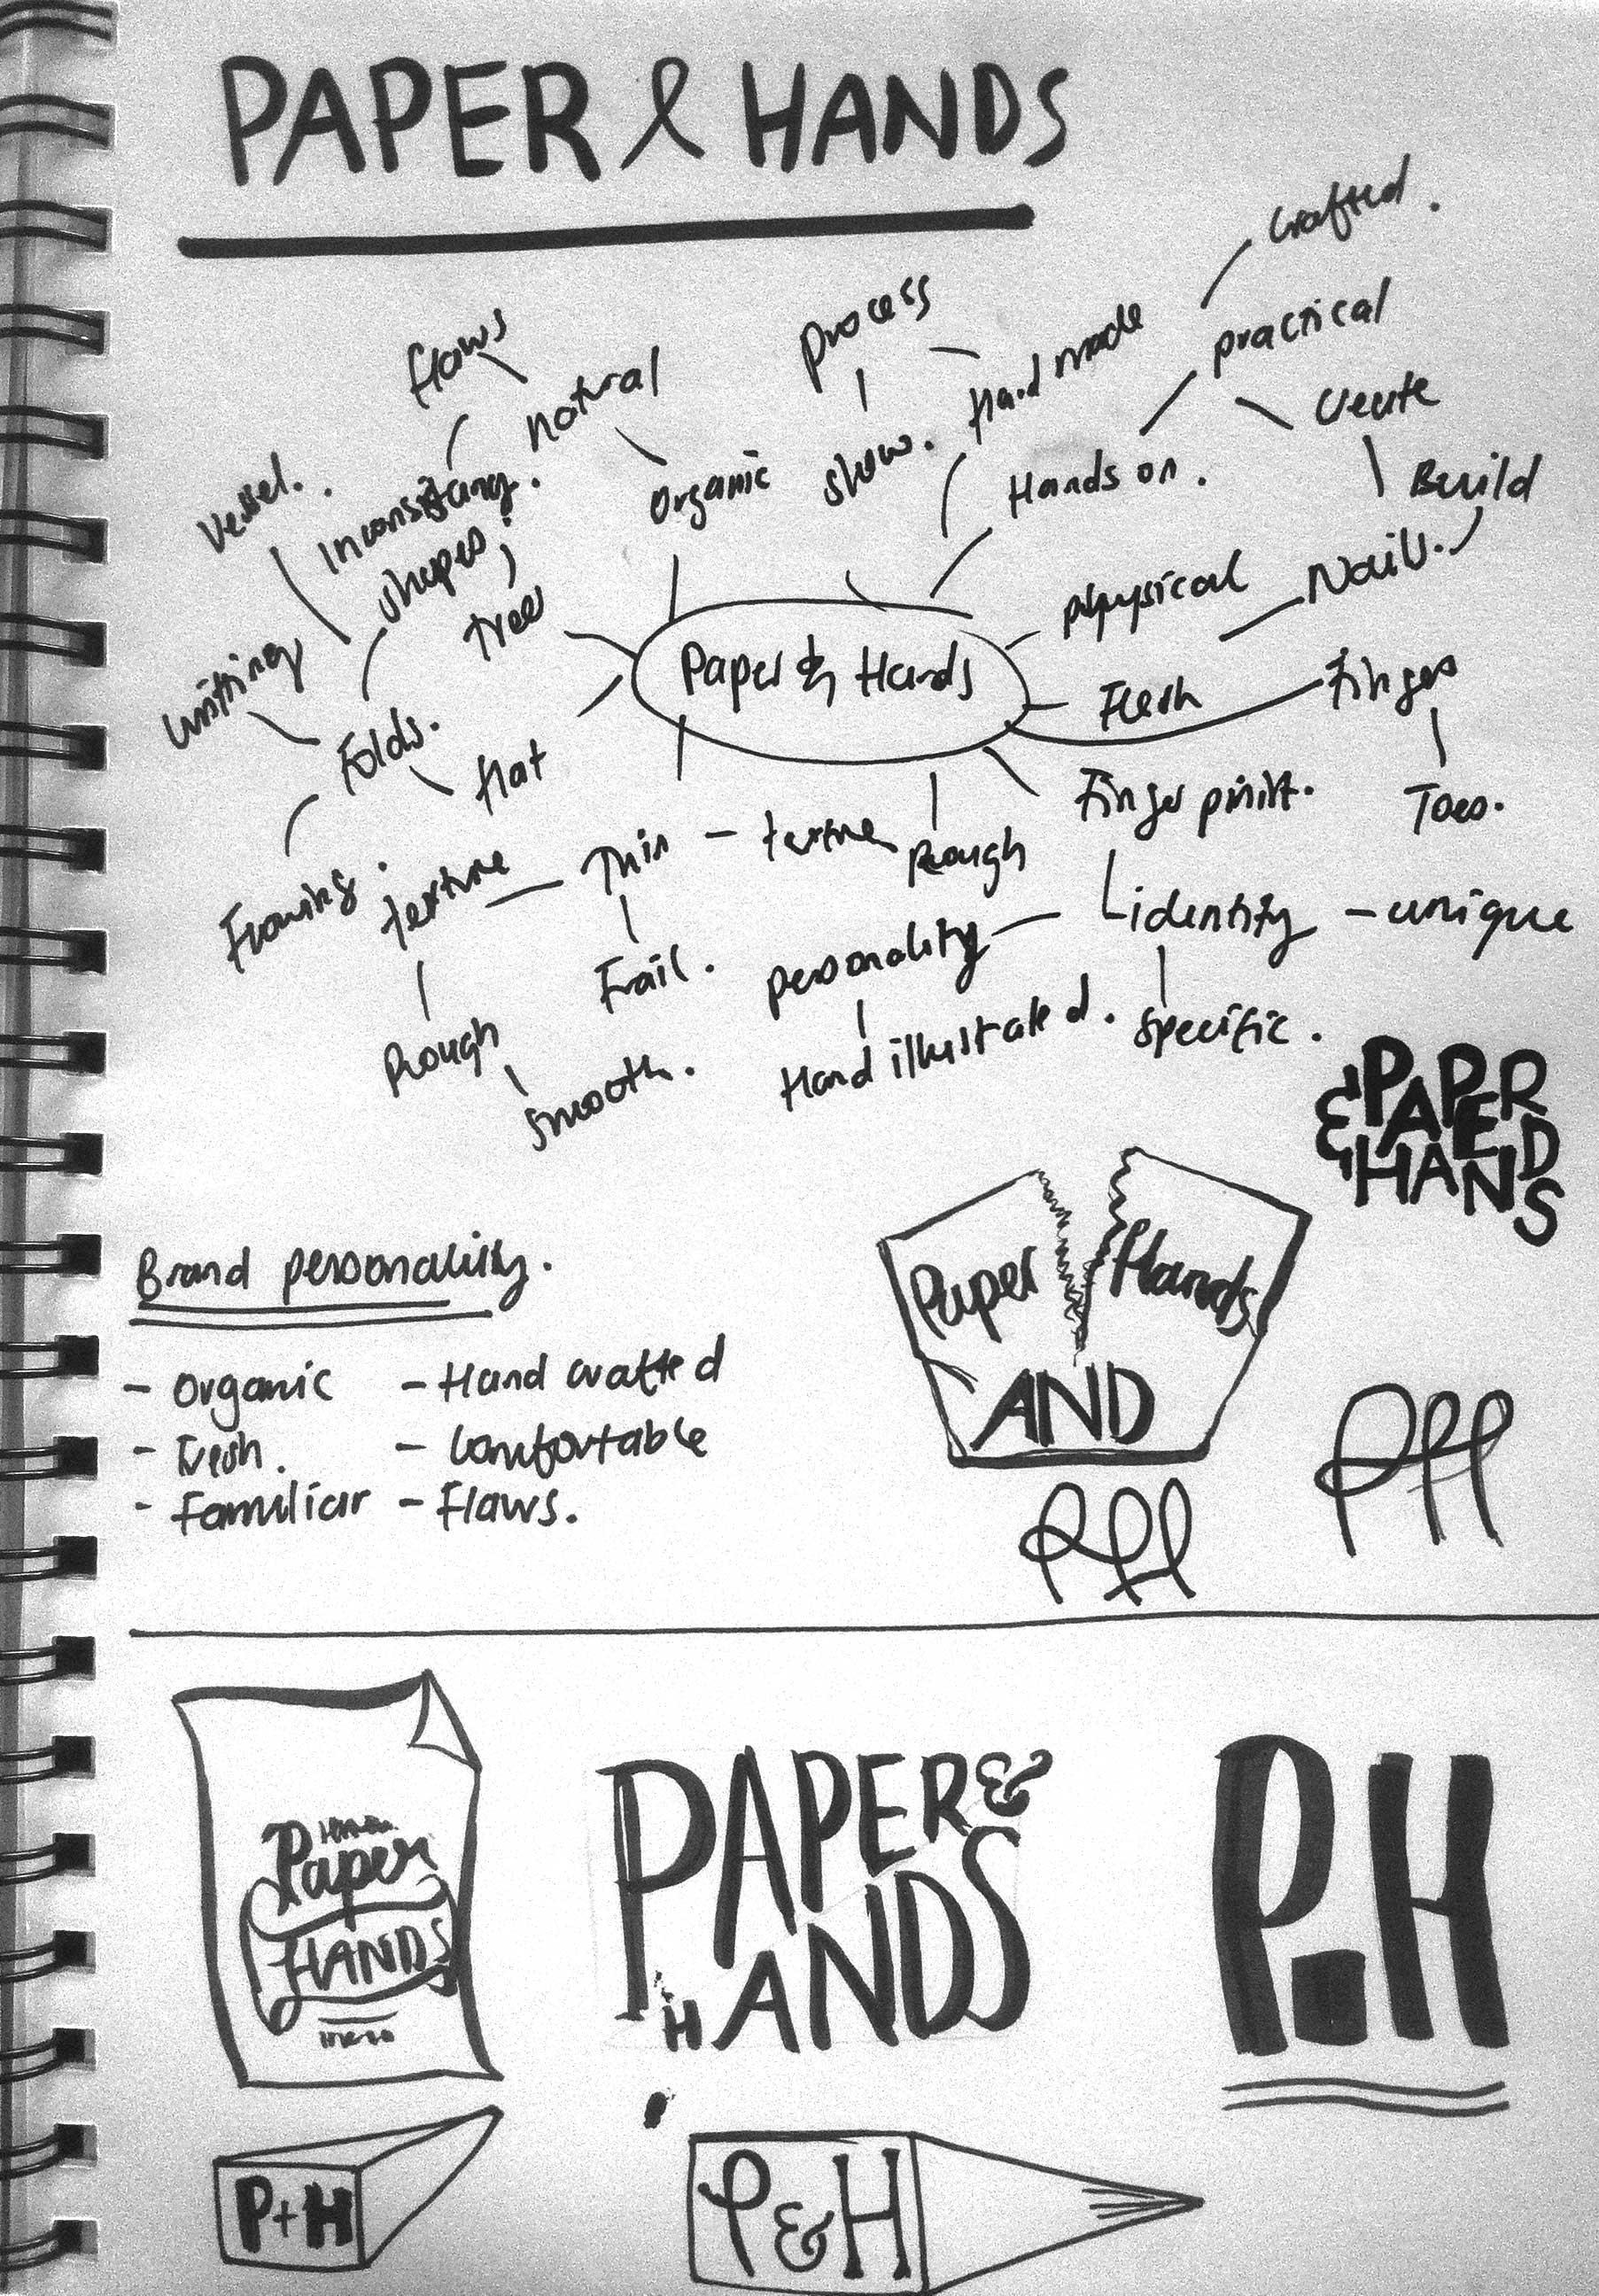 Paper & Hands - image 1 - student project